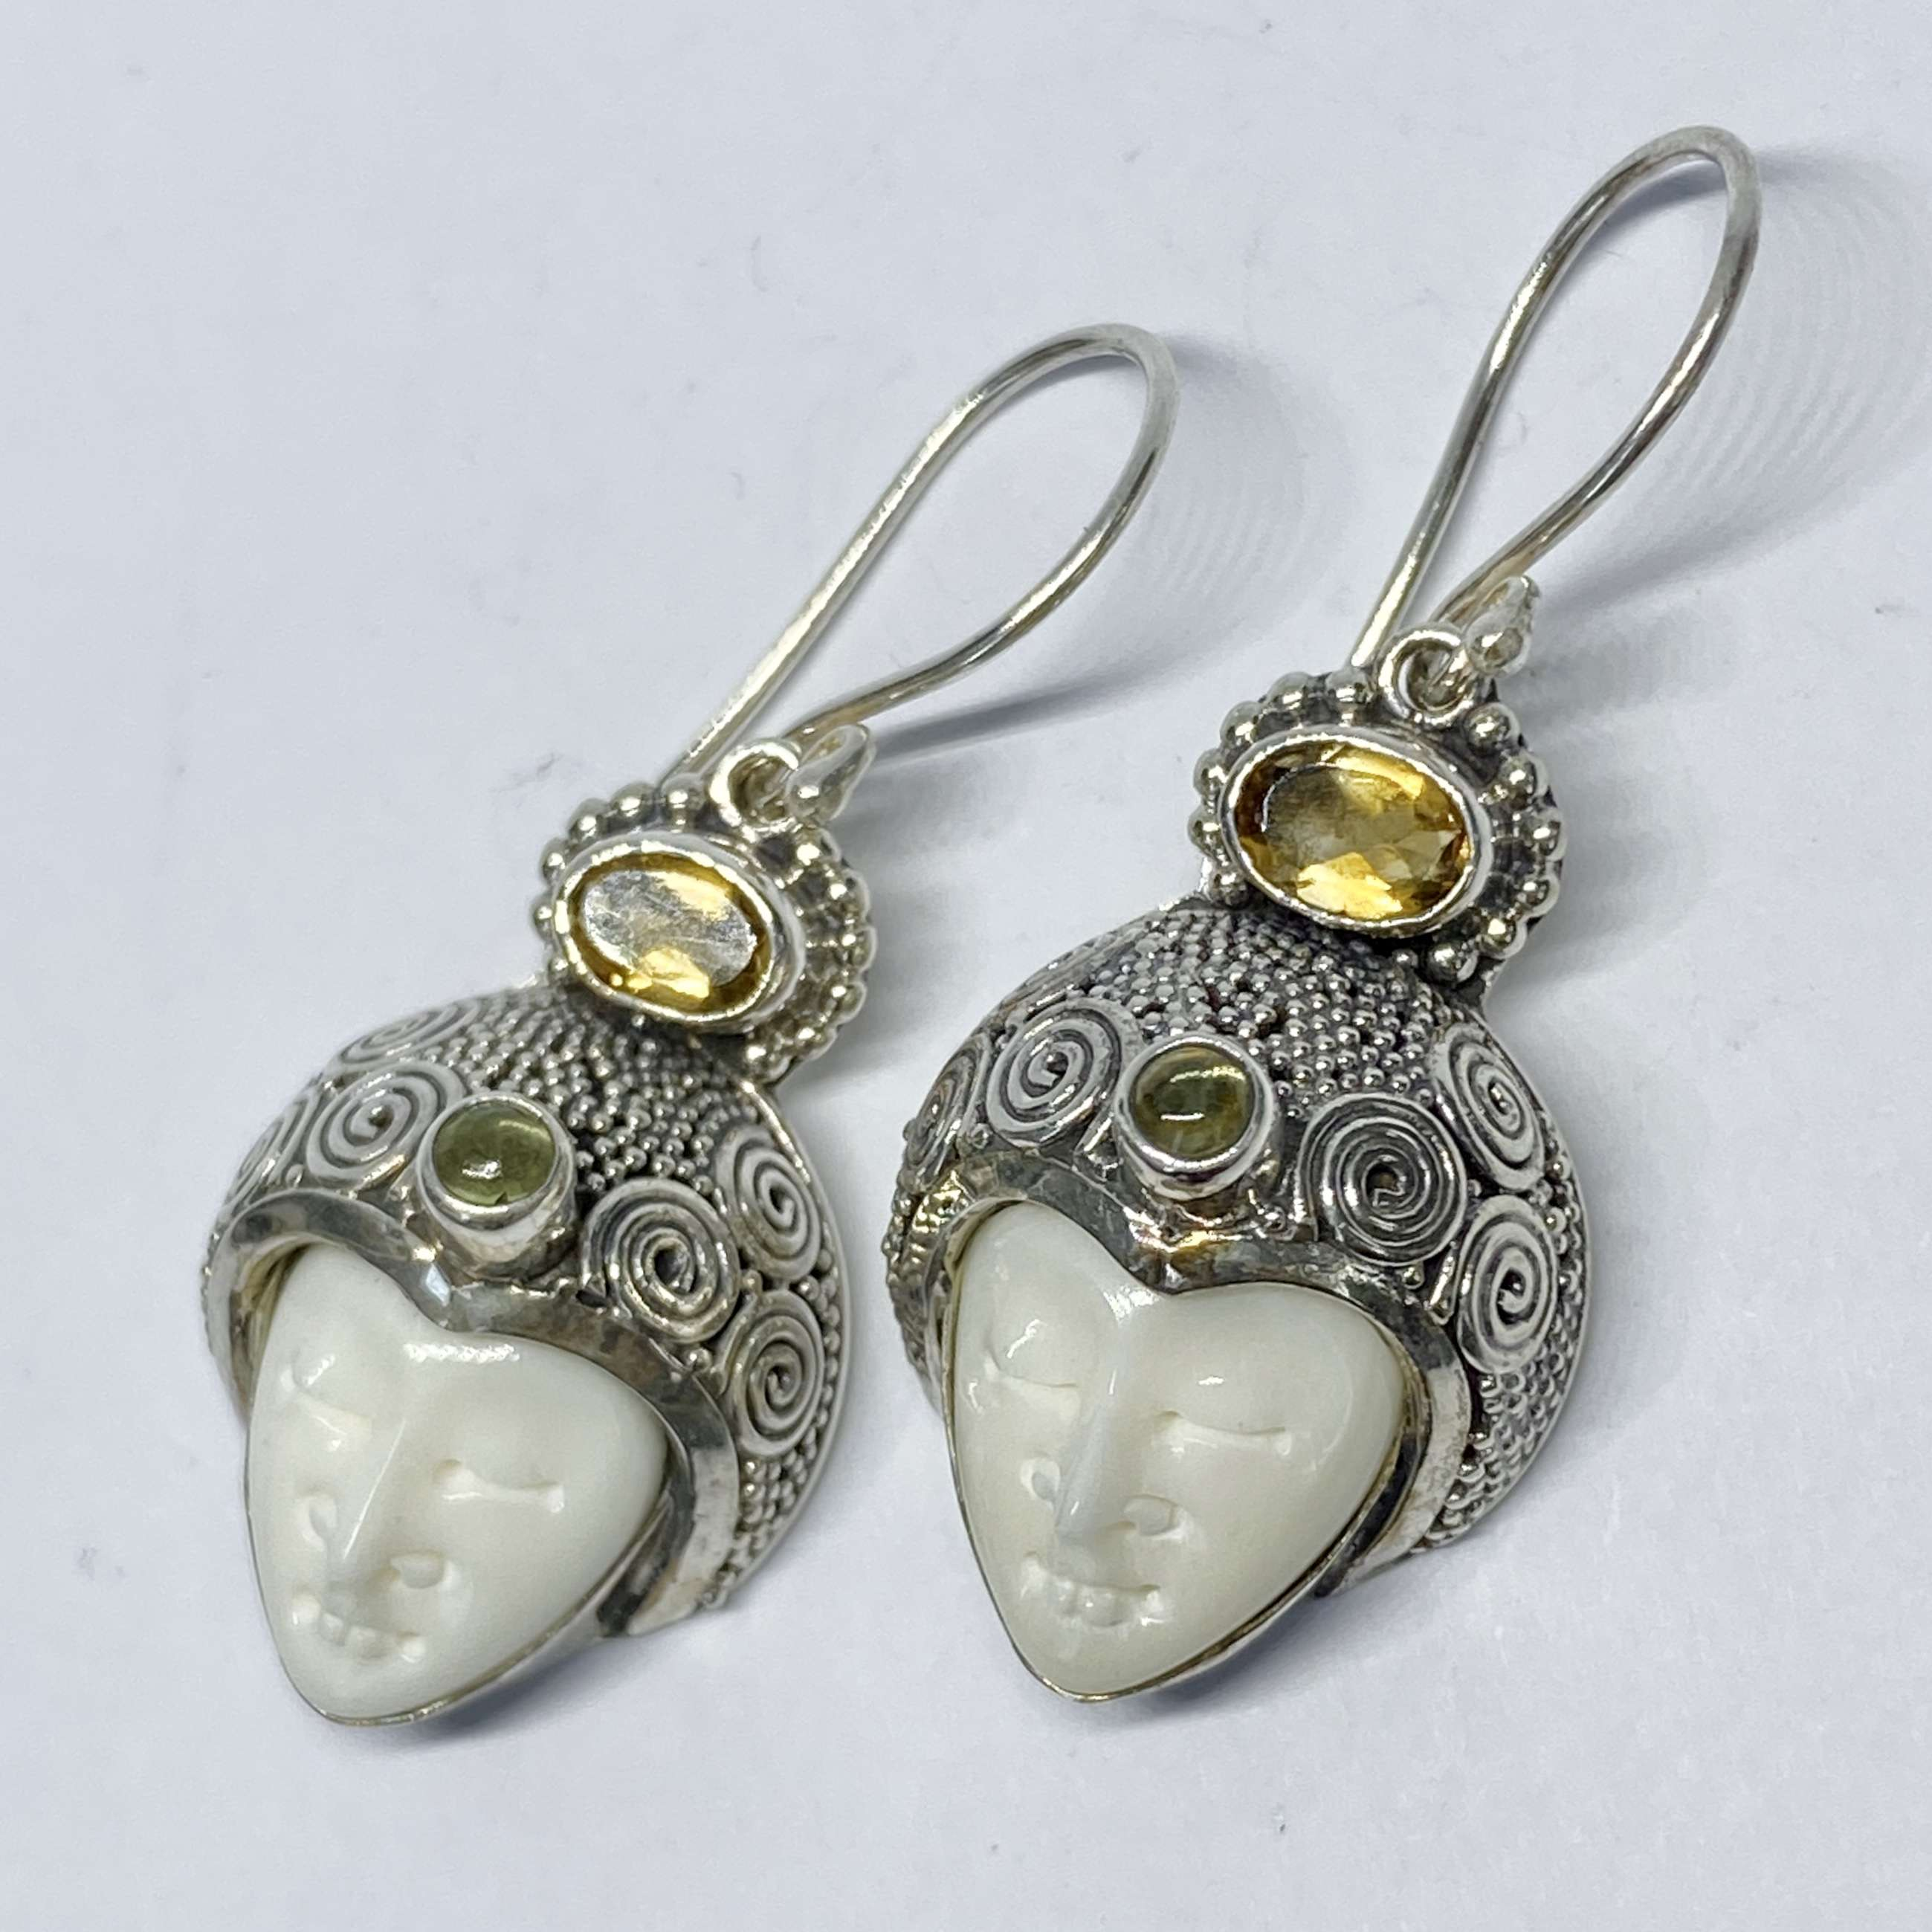 (HANDMADE 925 BALI SILVER BONE FACE EARRINGS WITH CITRINE)